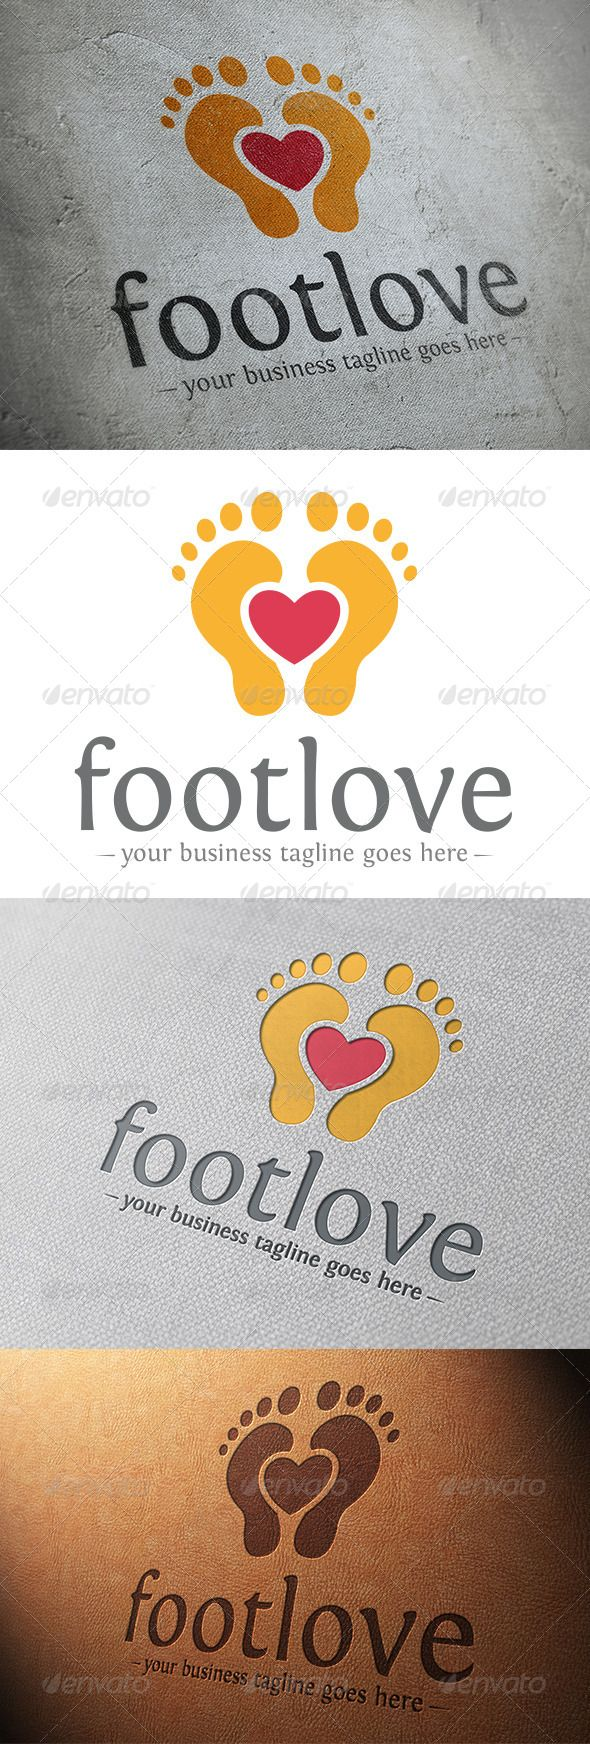 Foot Love Logo Template  #GraphicRiver         - Three color version: color, greyscale and single color.   - The logo is 100% resizable.   - You can change text and colors very easy using the named and organized layers that includes the file.   - The typography used is Fontin you can download here:  .fontsquirrel /fonts/Fontin         Created: 15October13 GraphicsFilesIncluded: VectorEPS #AIIllustrator Layered: Yes MinimumAdobeCSVersion: CS Resolution: